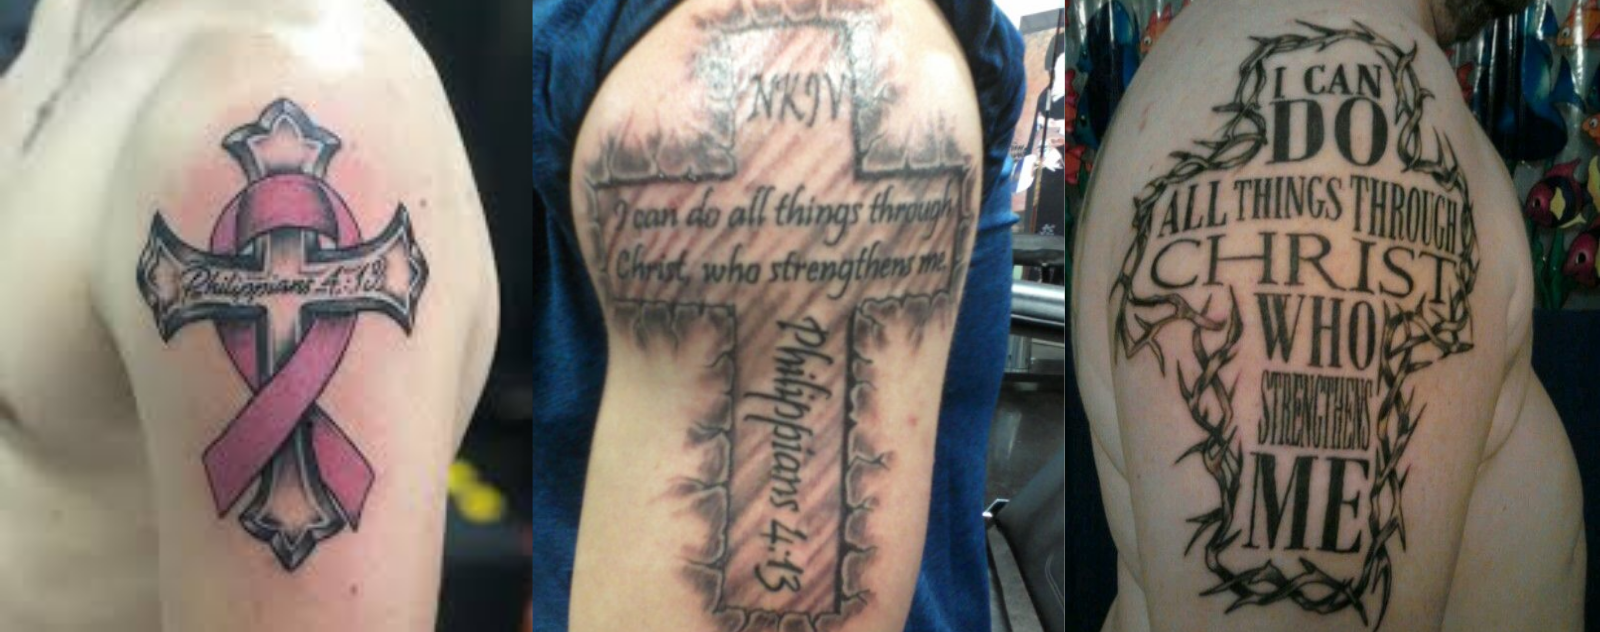 philippians-4-13-tattoo-shoulder-13